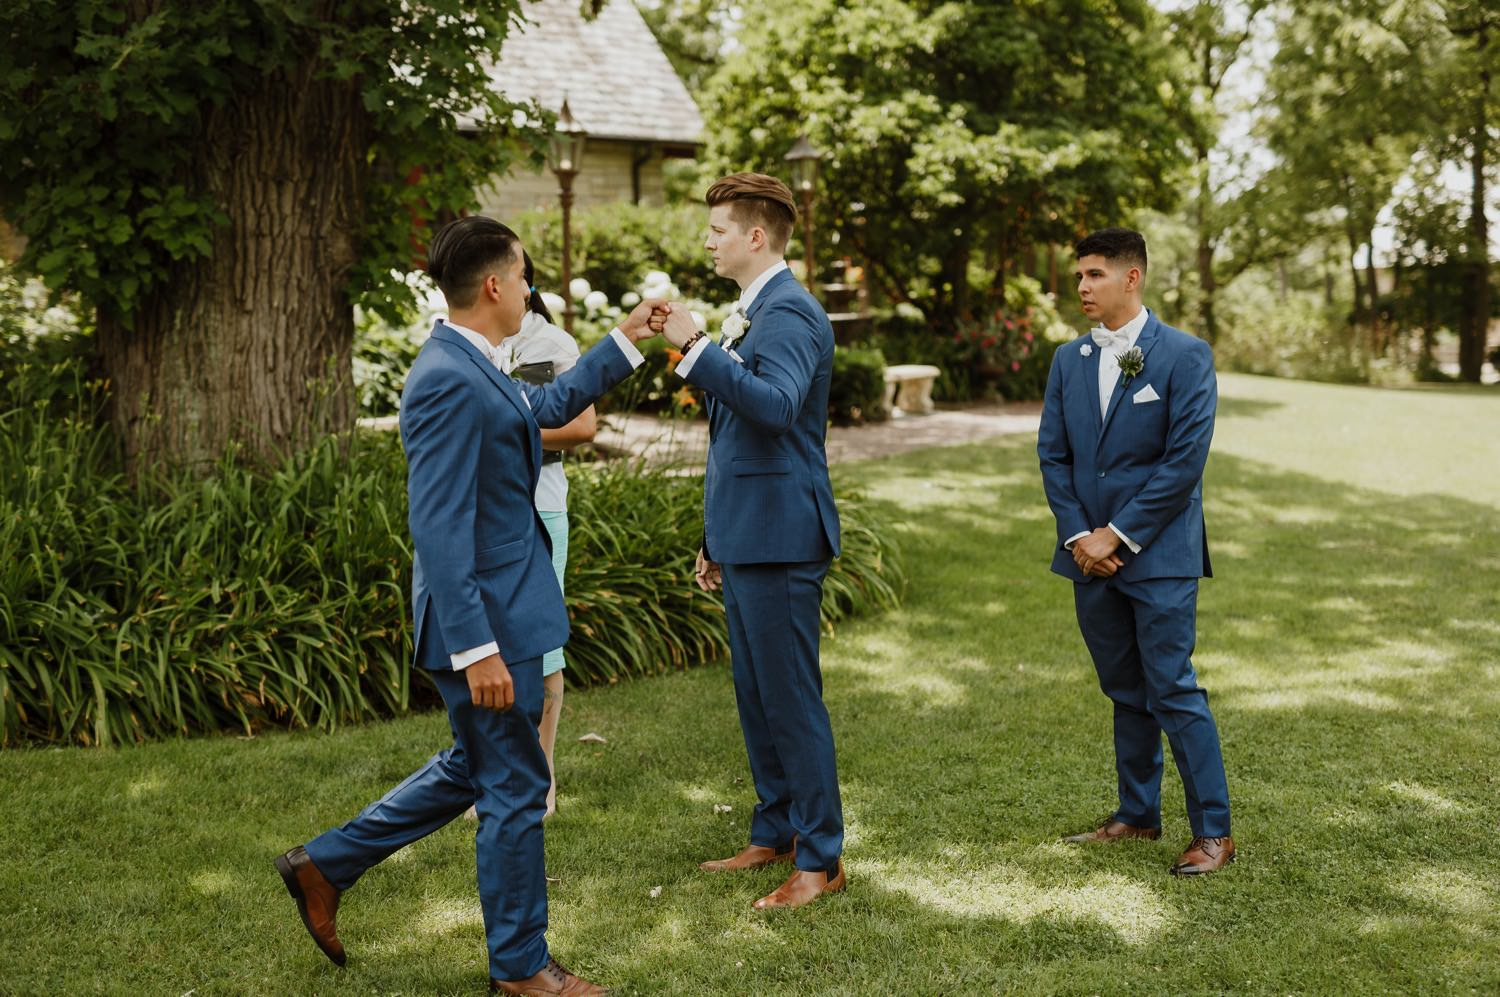 Groom greets his best men before the wedding ceremony at Redfield estate